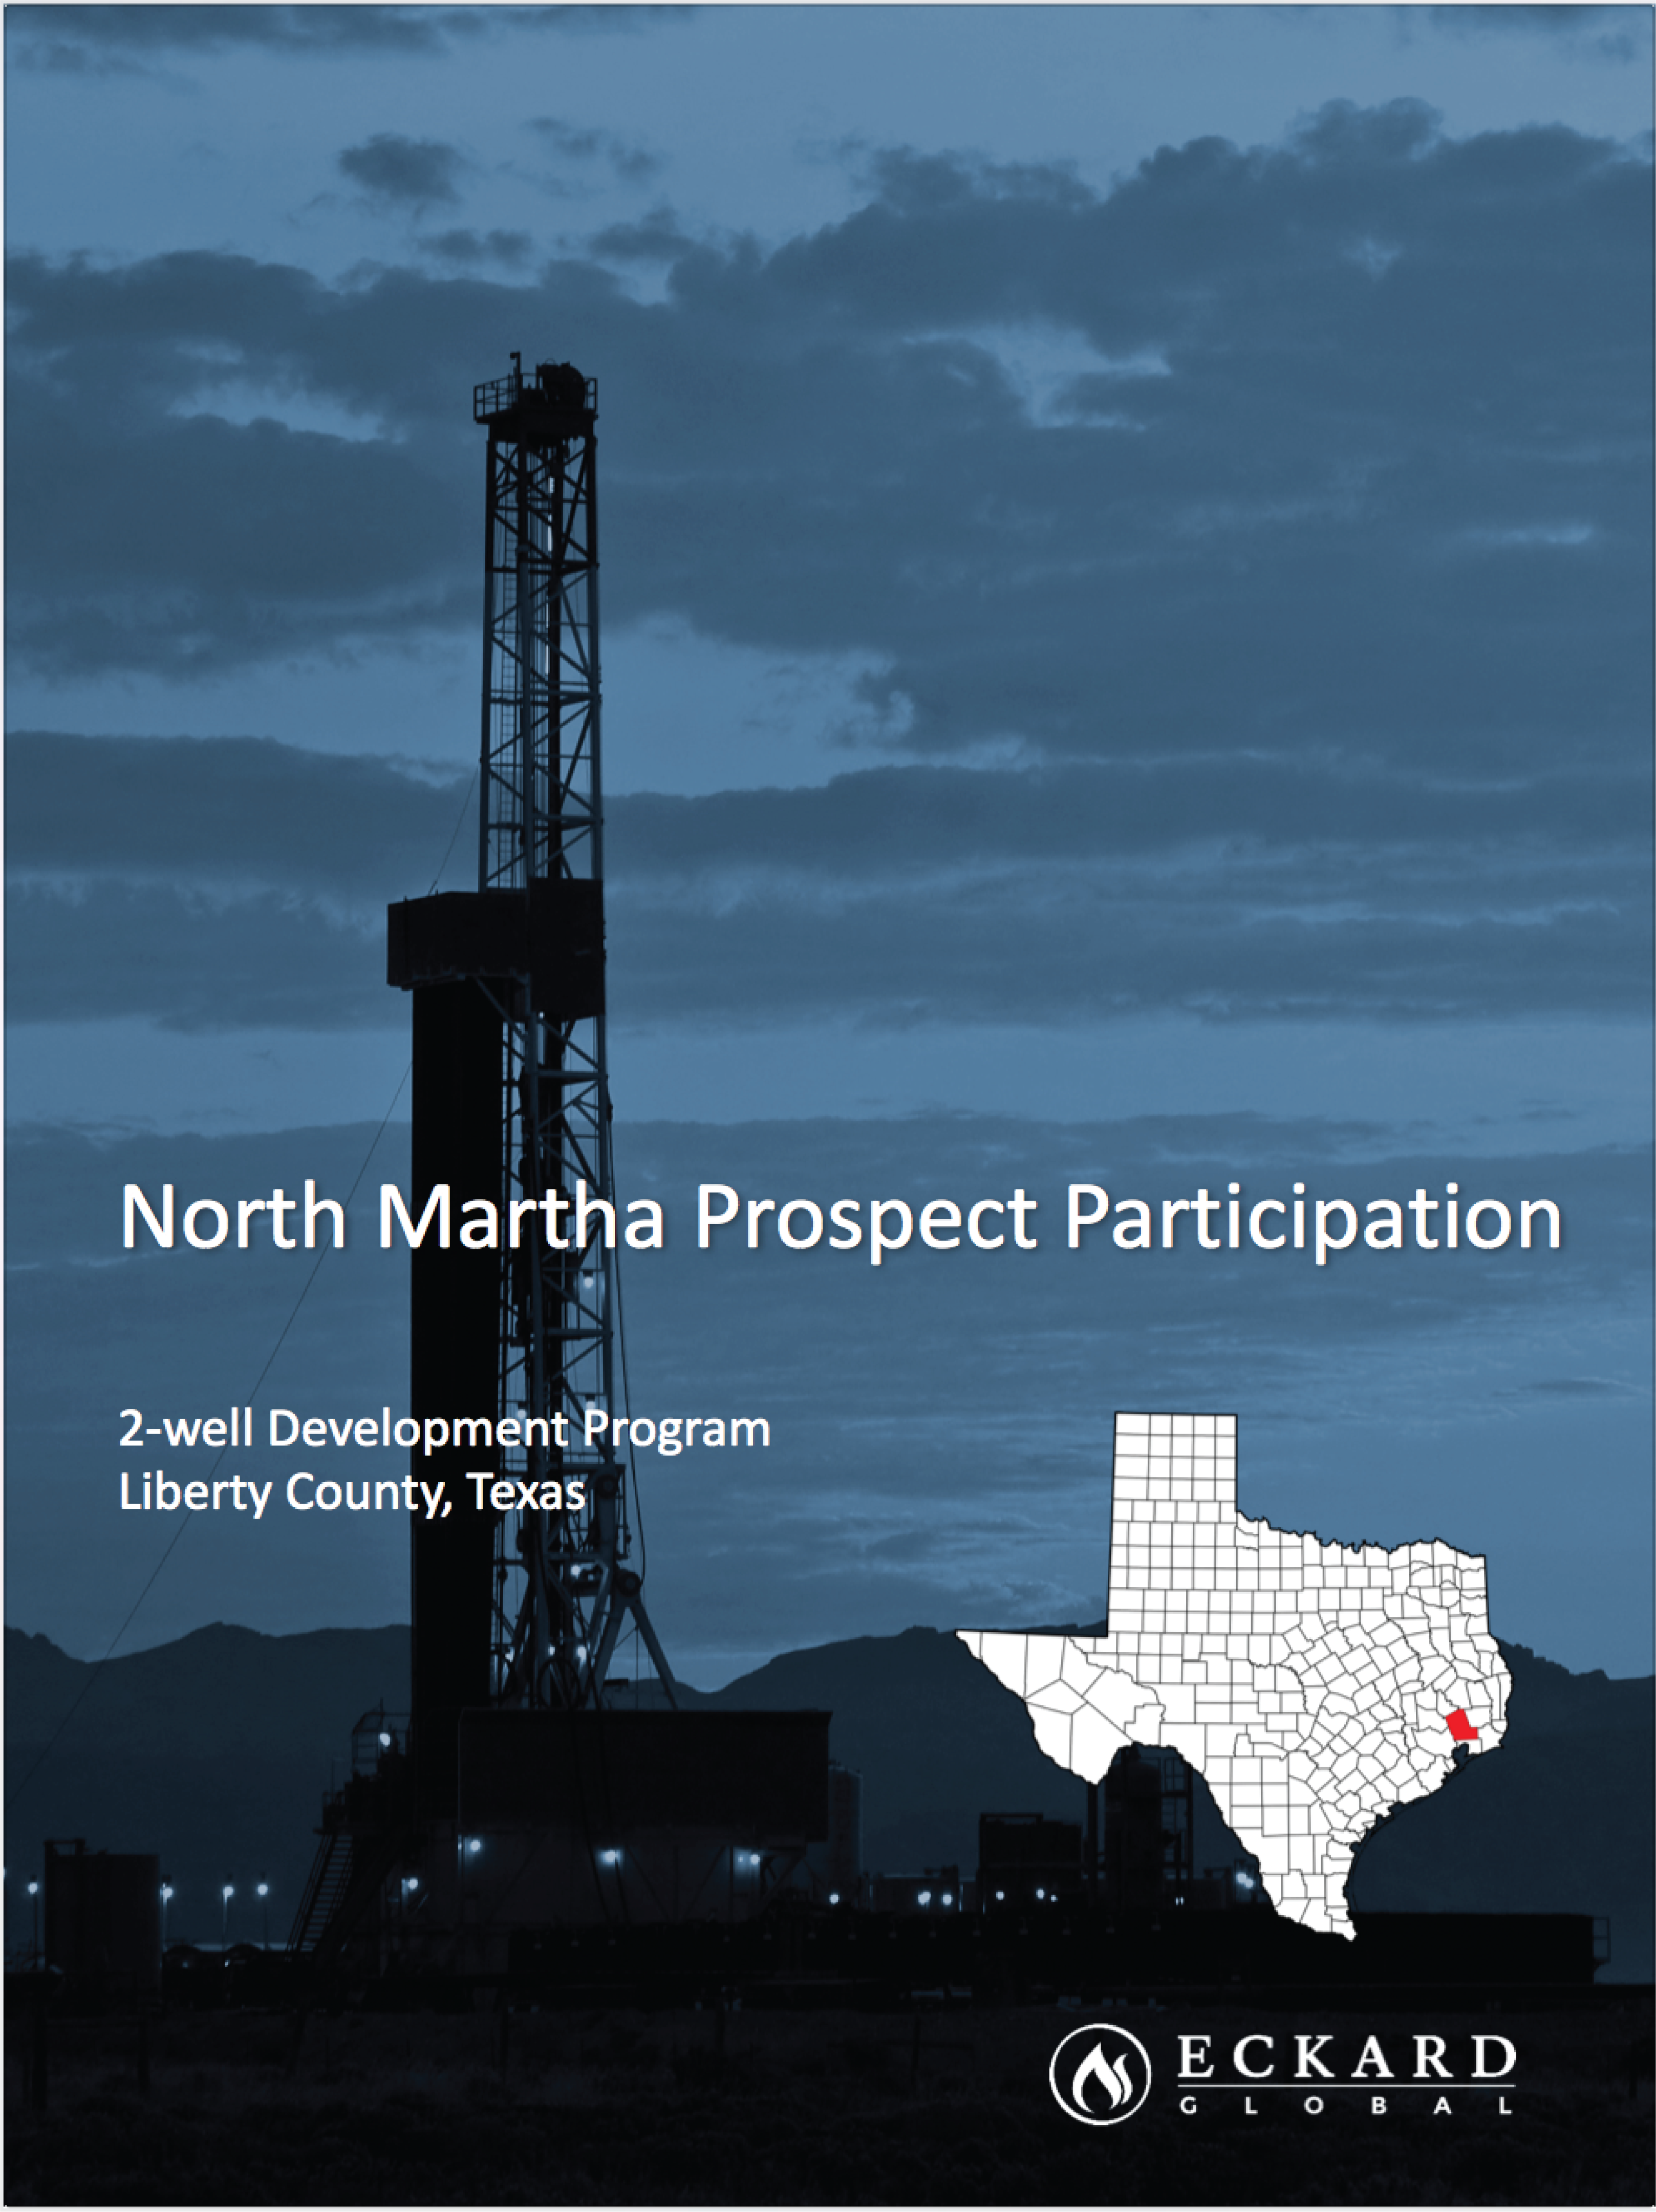 oil-prospect-north-martha